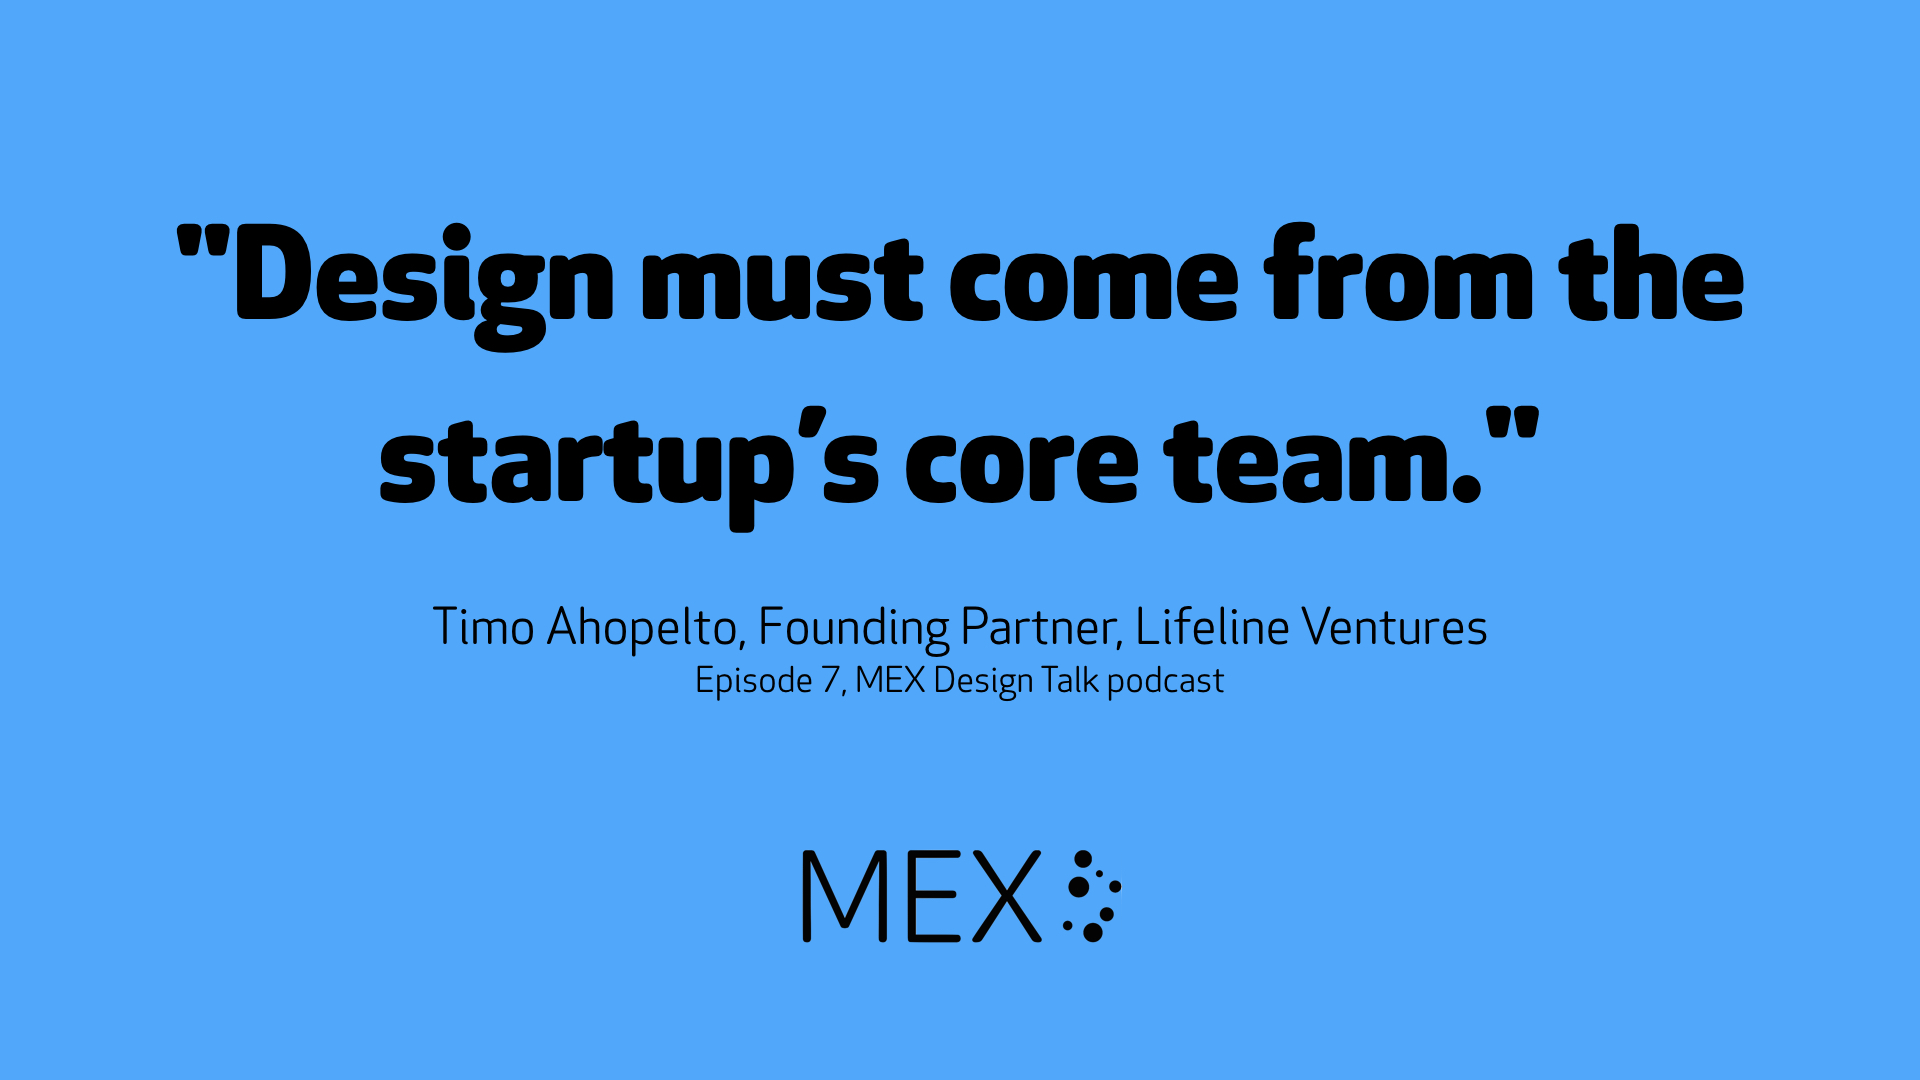 Design must come from the startup's core team, Timo Ahopelto on the MEX podcast